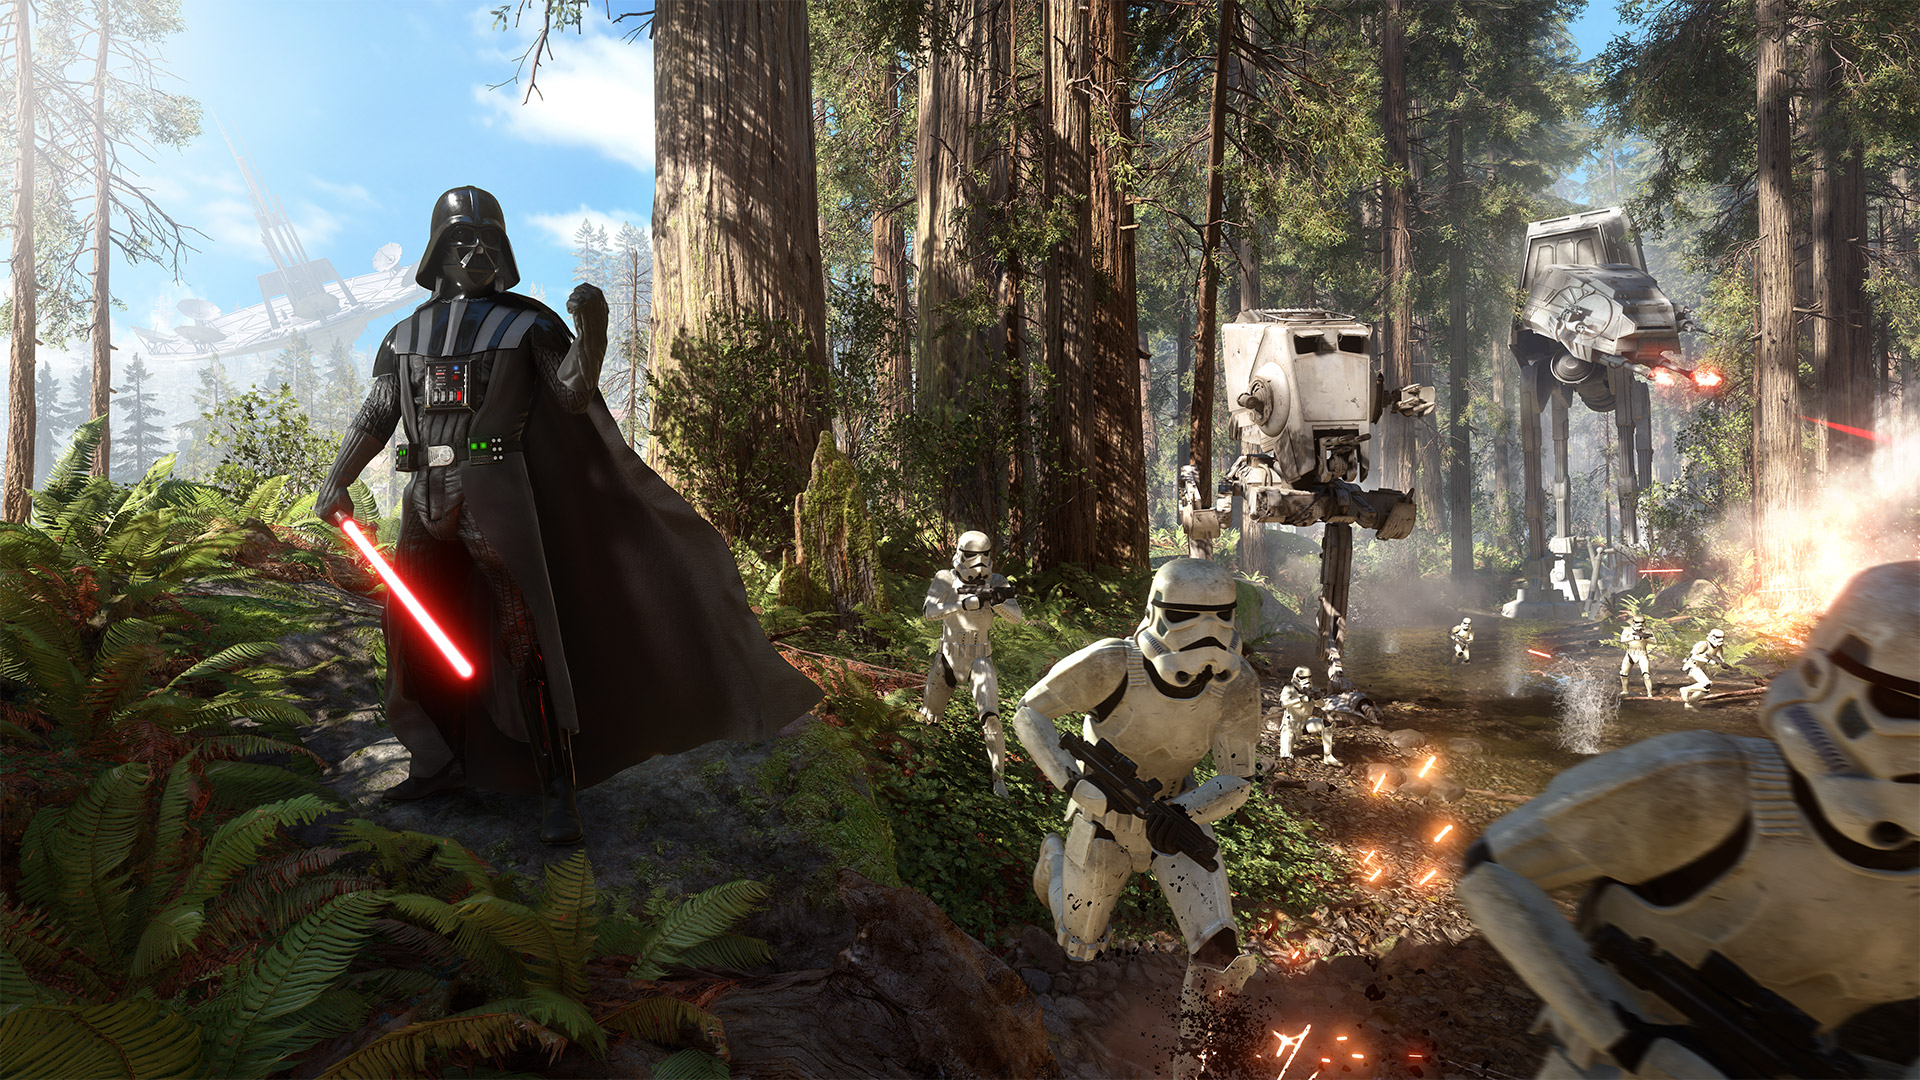 Star Wars: Battlefront - a sales Force to be reckoned with